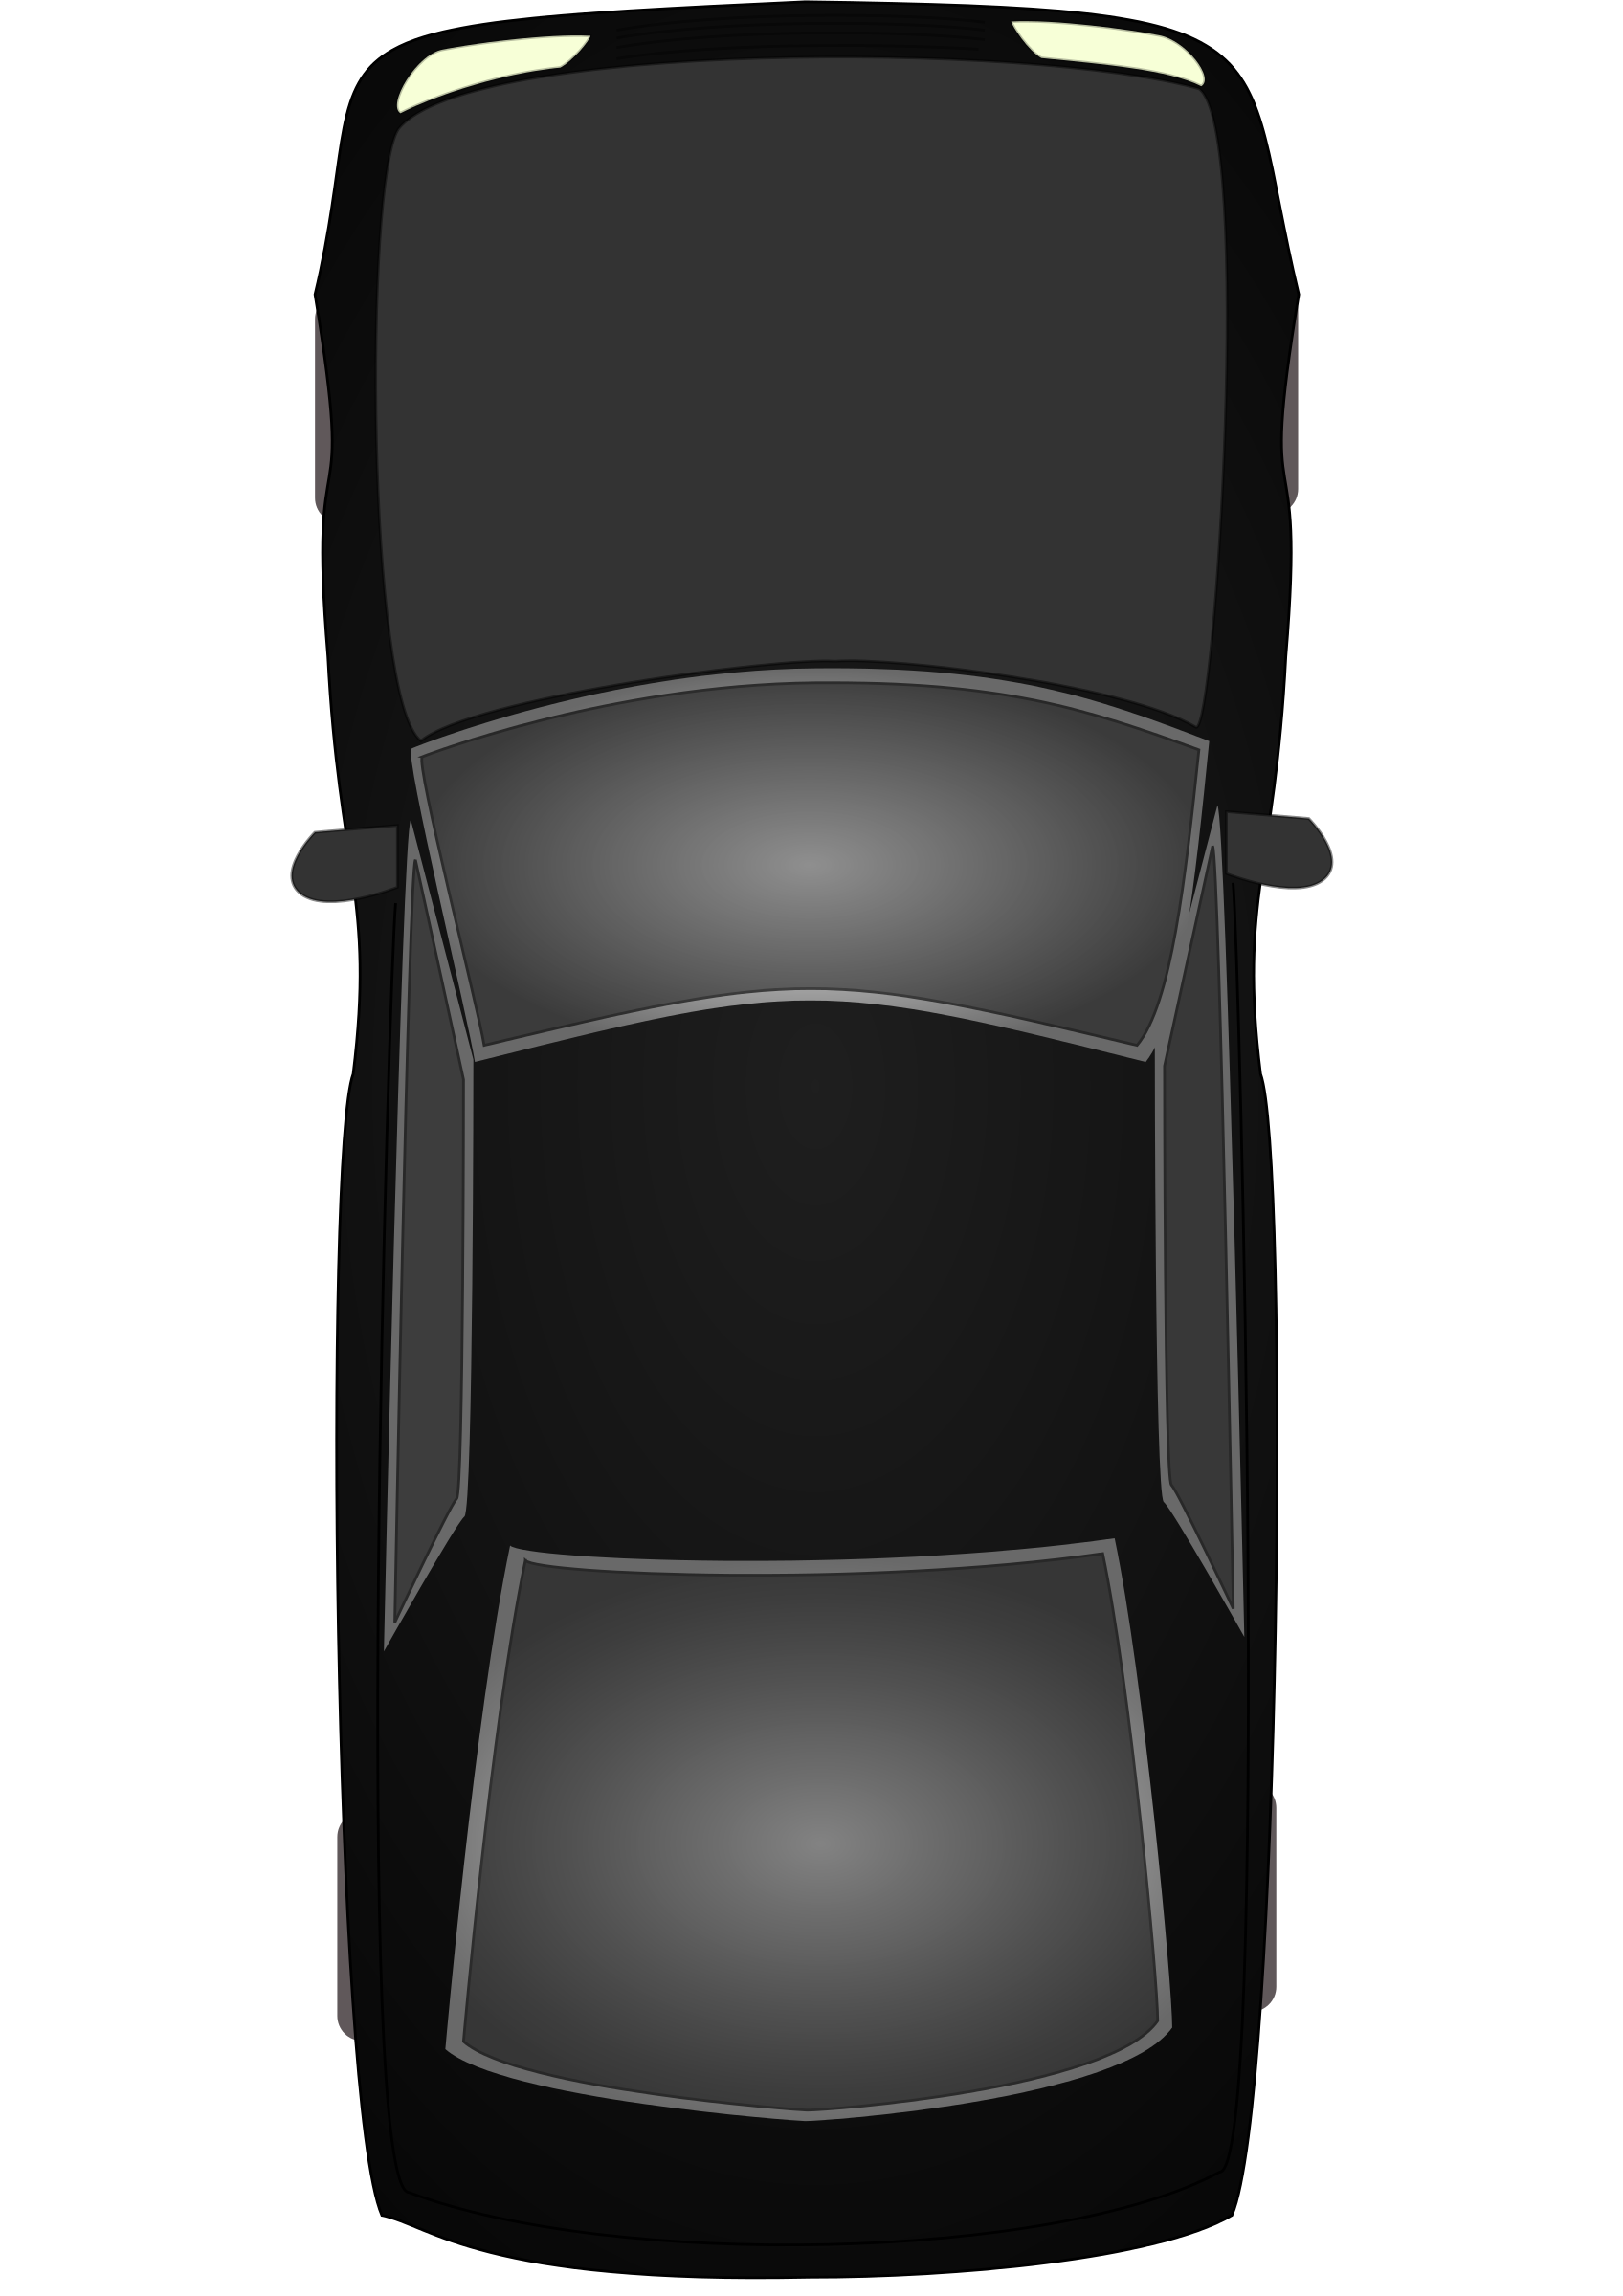 Car Top View Clipart.